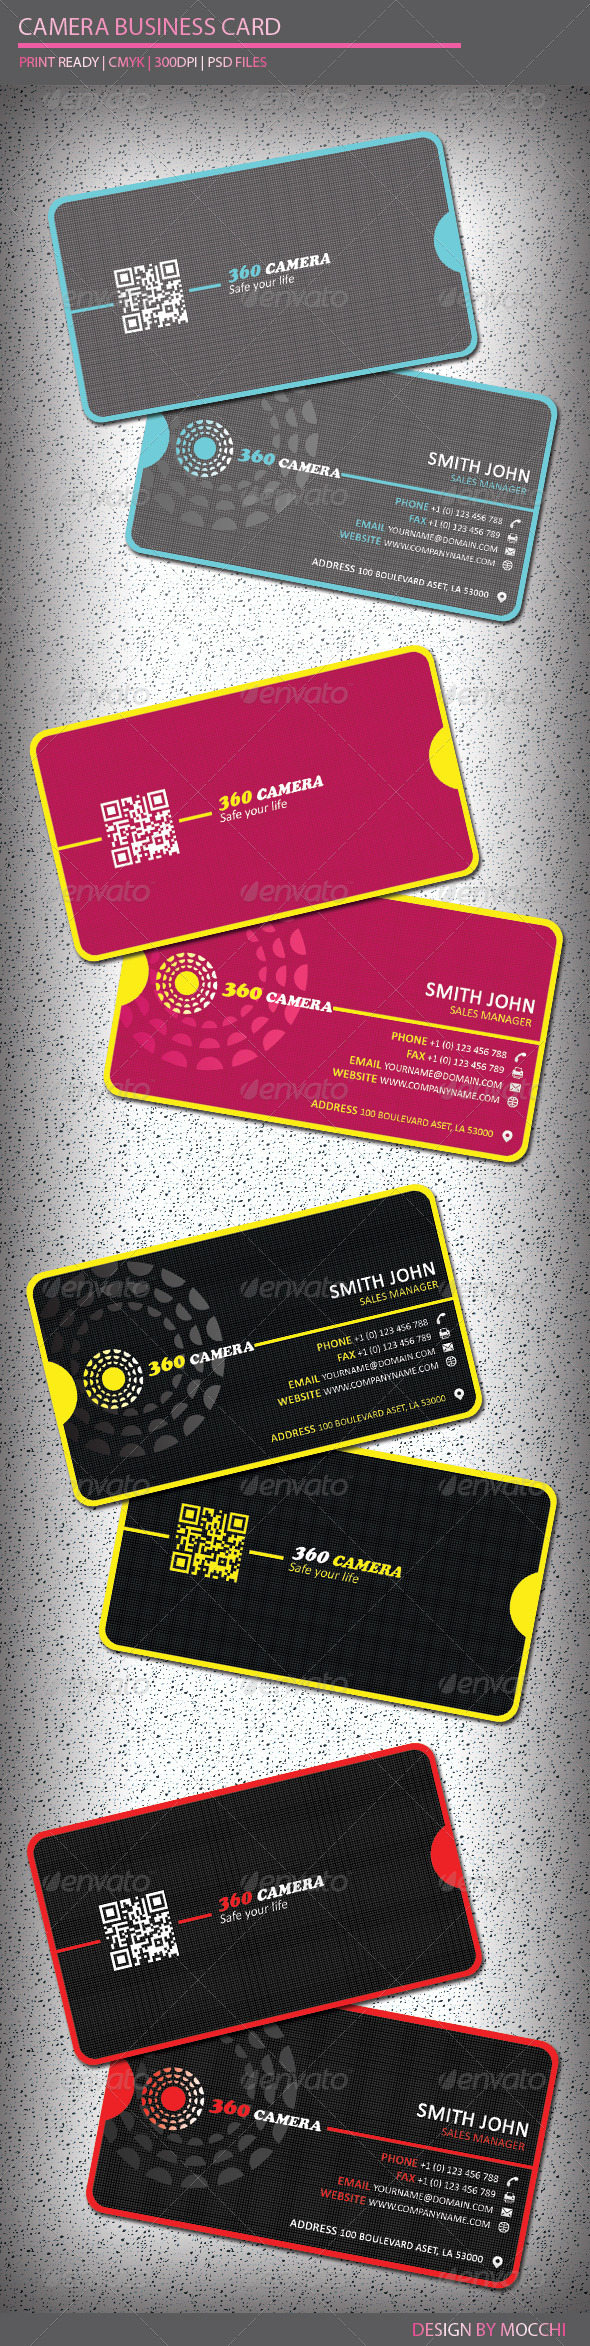 Camera Business Card - Creative Business Cards